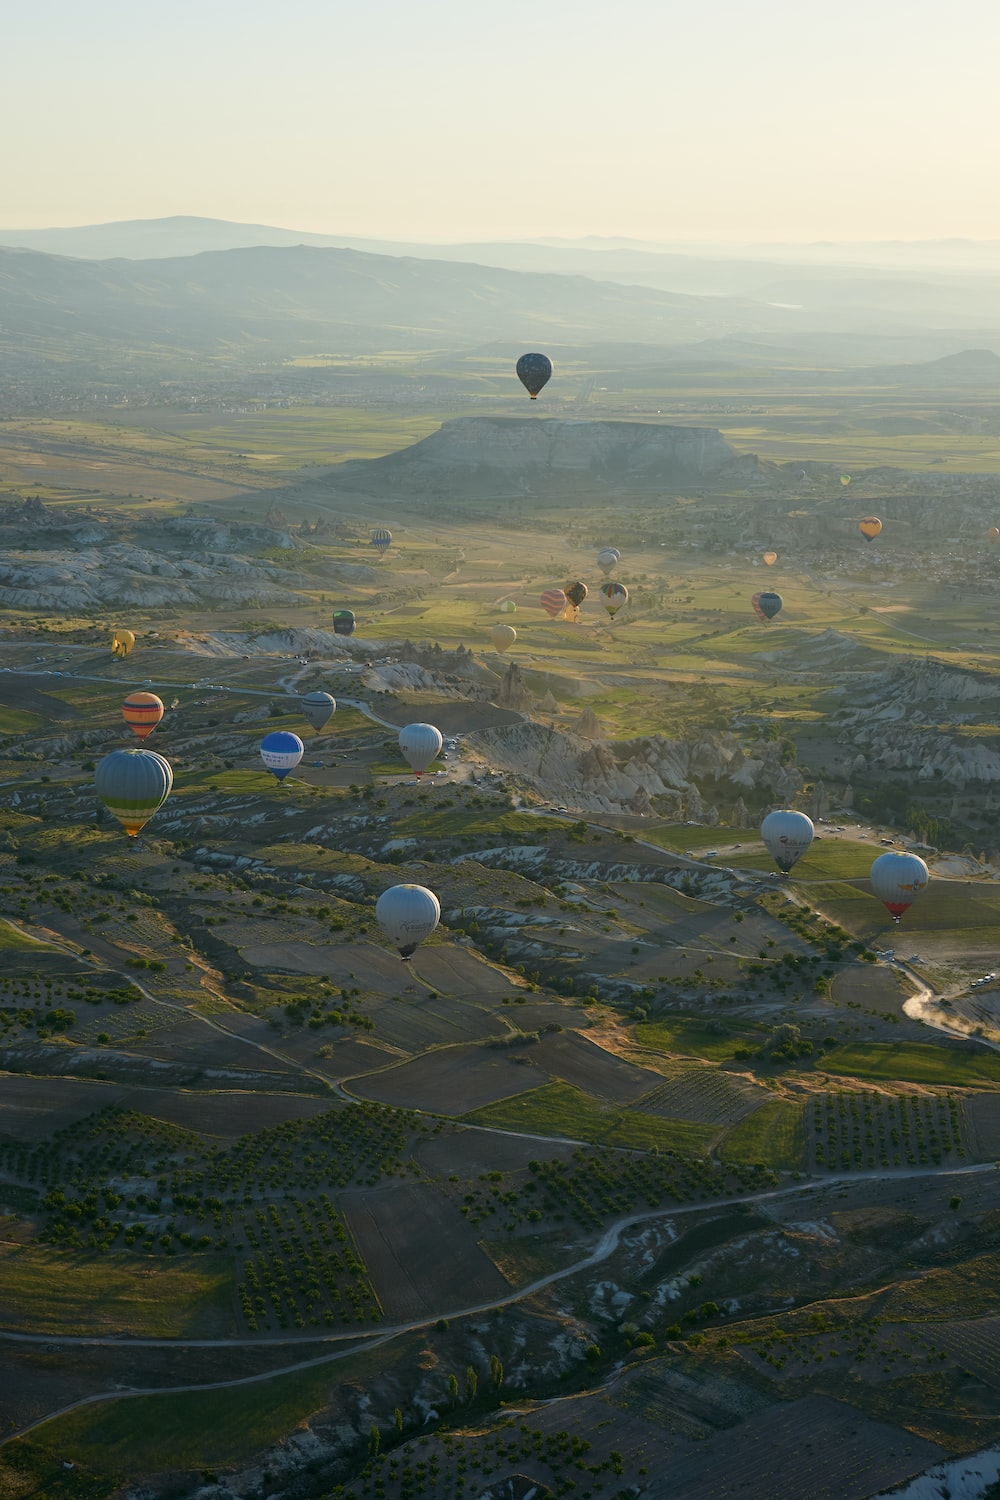 hot air balloons flying over green grass field during daytime